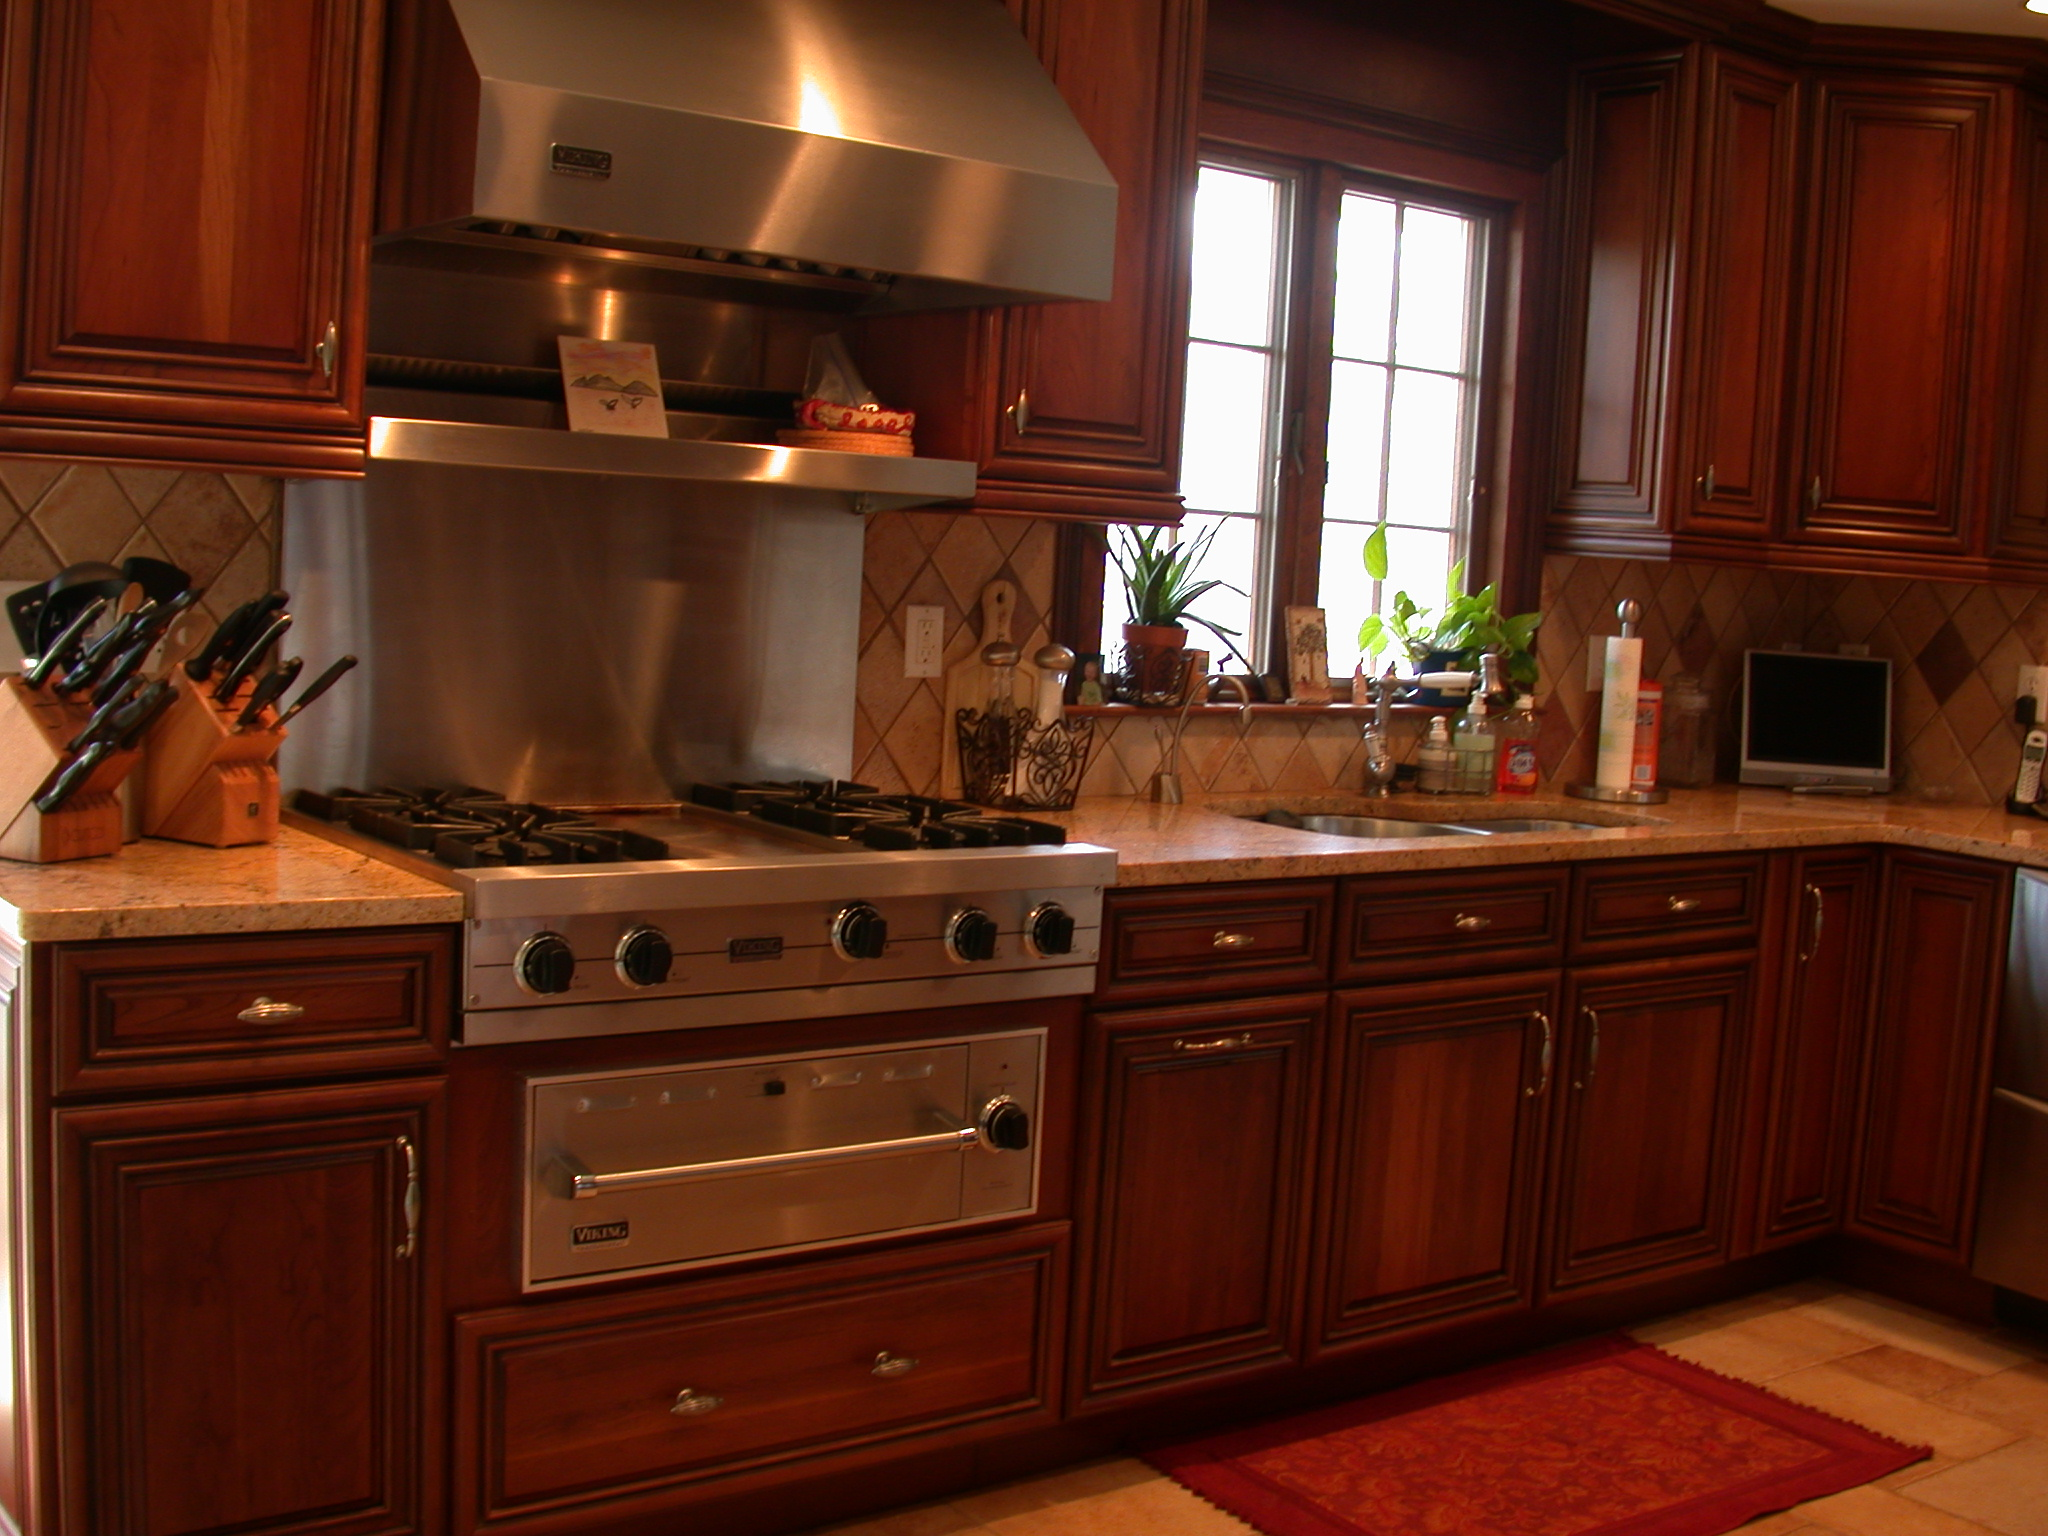 Kitchen Showrooms Online kitchen & bath express | new jersey | south amboy plumbing online